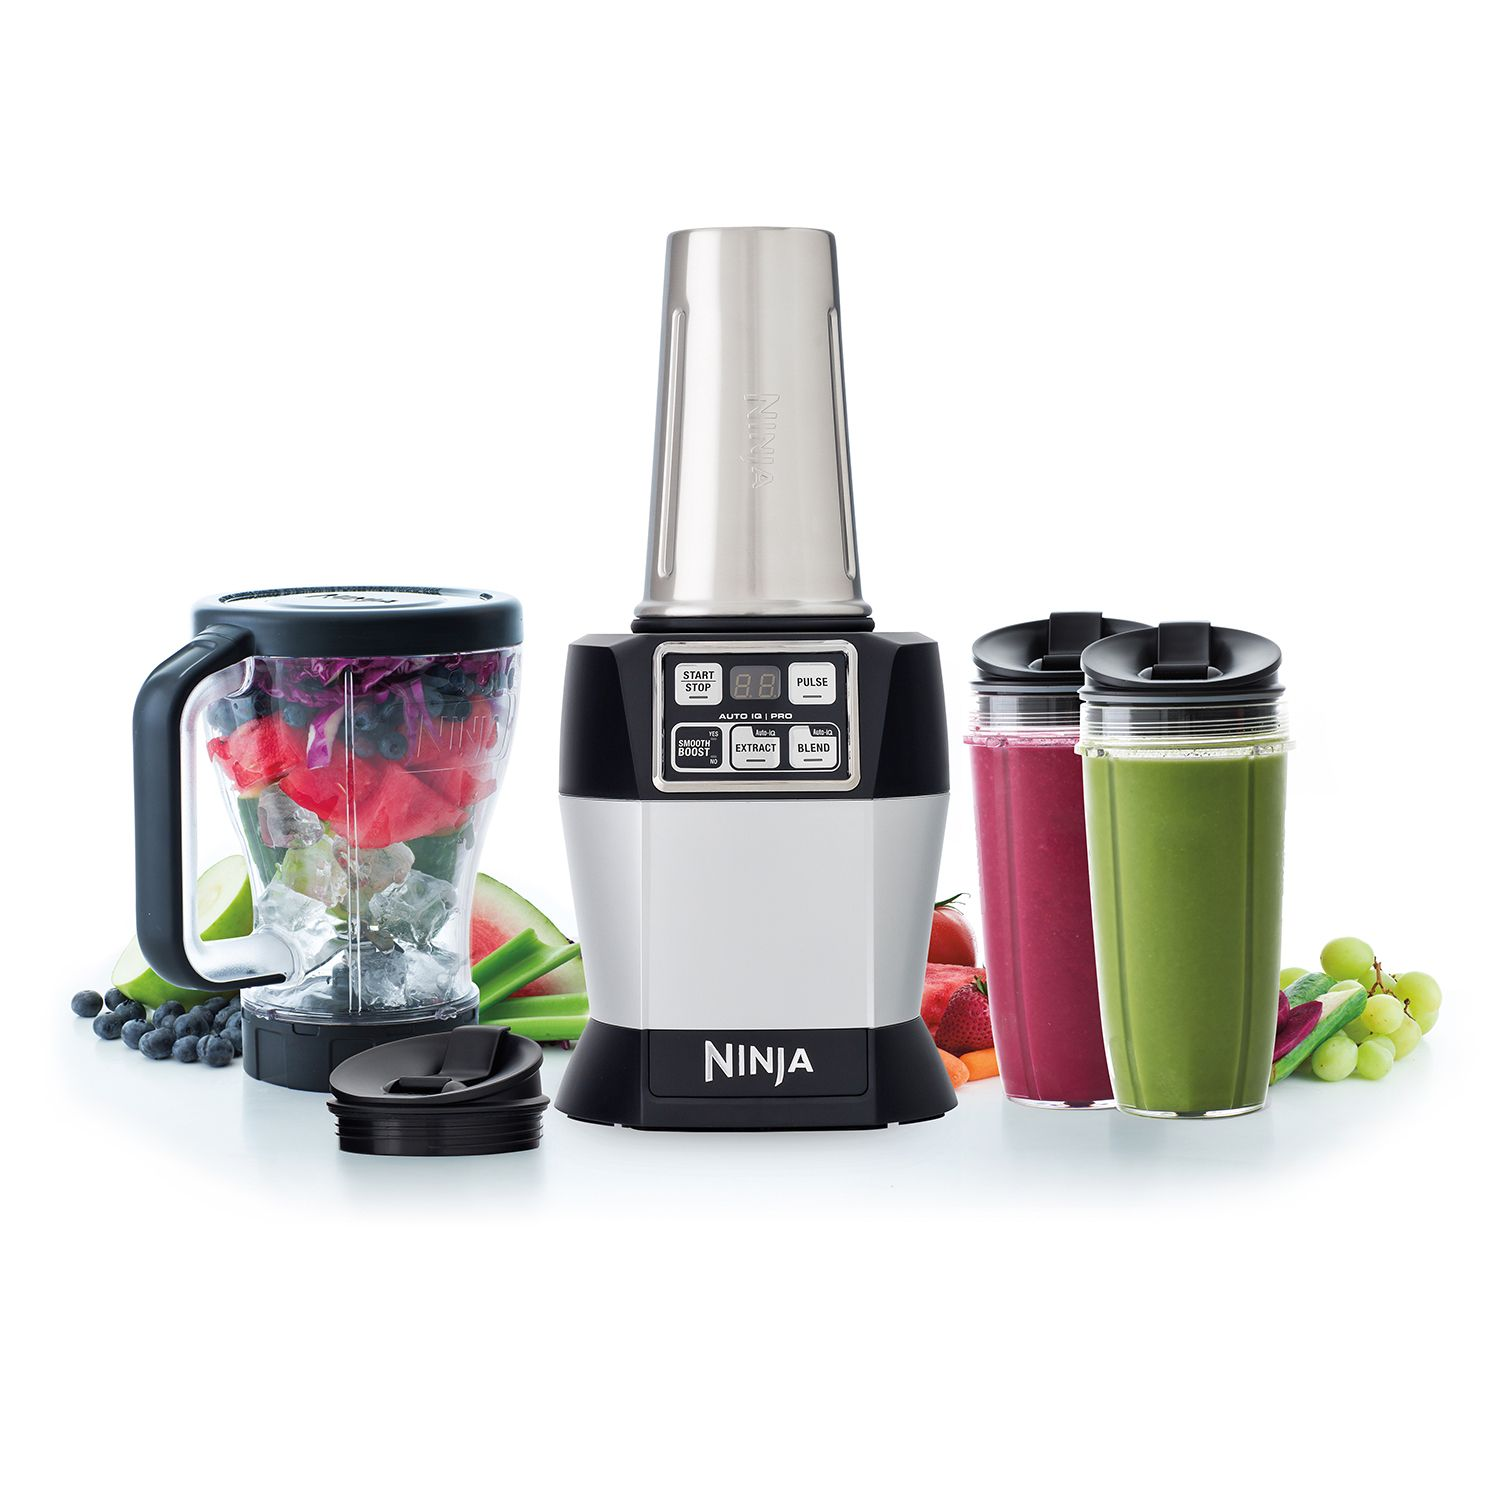 Nutri ninja blender system with auto iq technology - Nutri Ninja Auto Iq Pro 1100 Watt Complete Professional Blender With Smooth Boost New Open Box Walmart Com